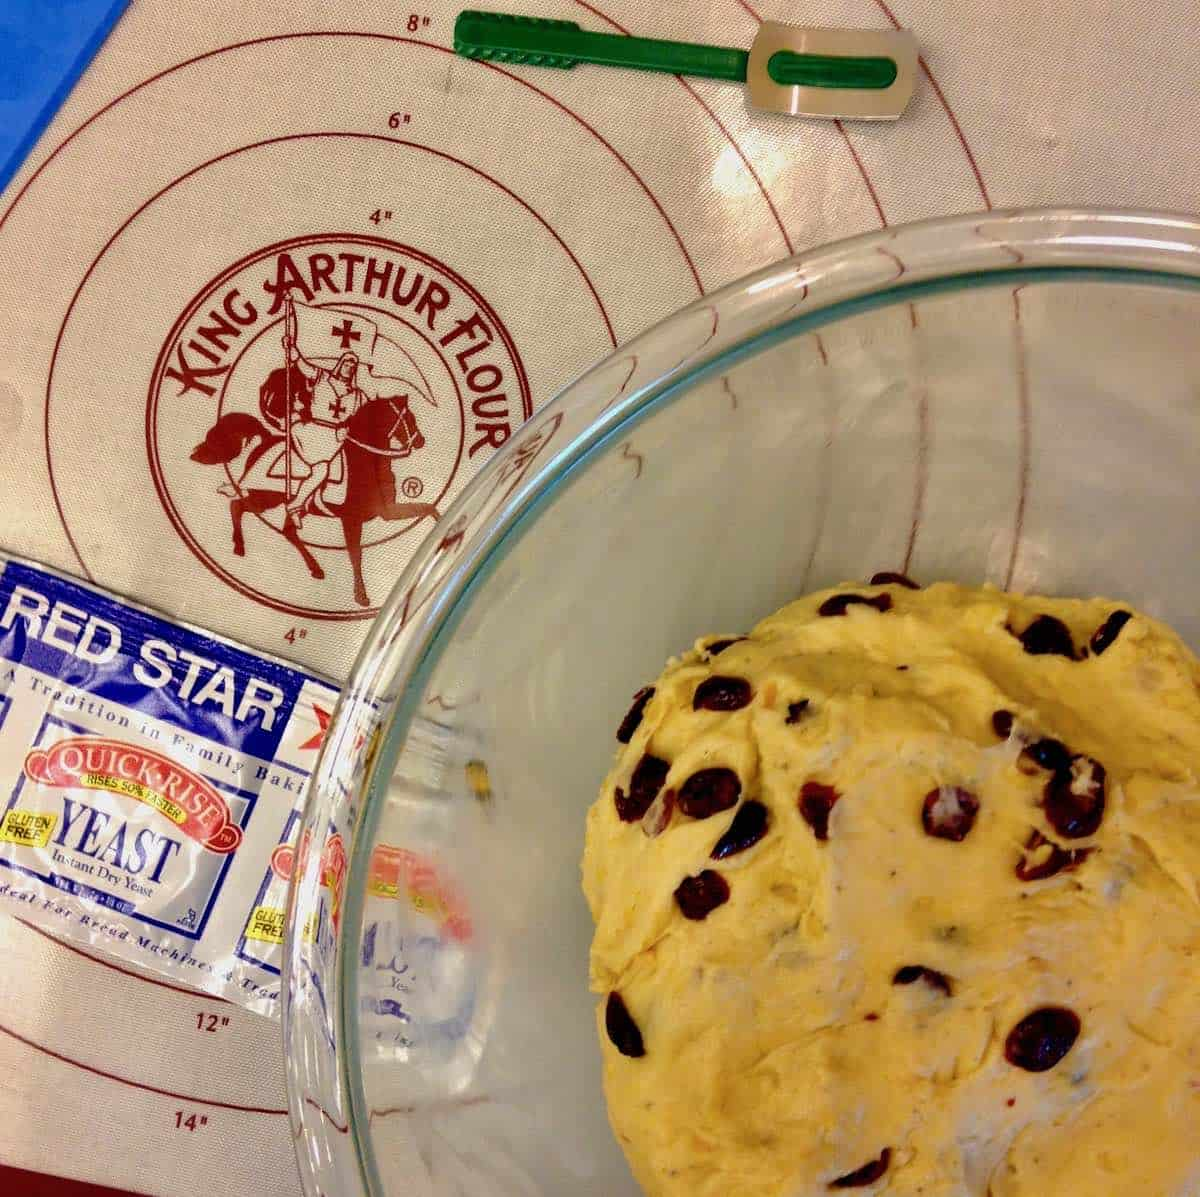 from field to fork use red star yeast and King Arthur flour to bake winning recipes